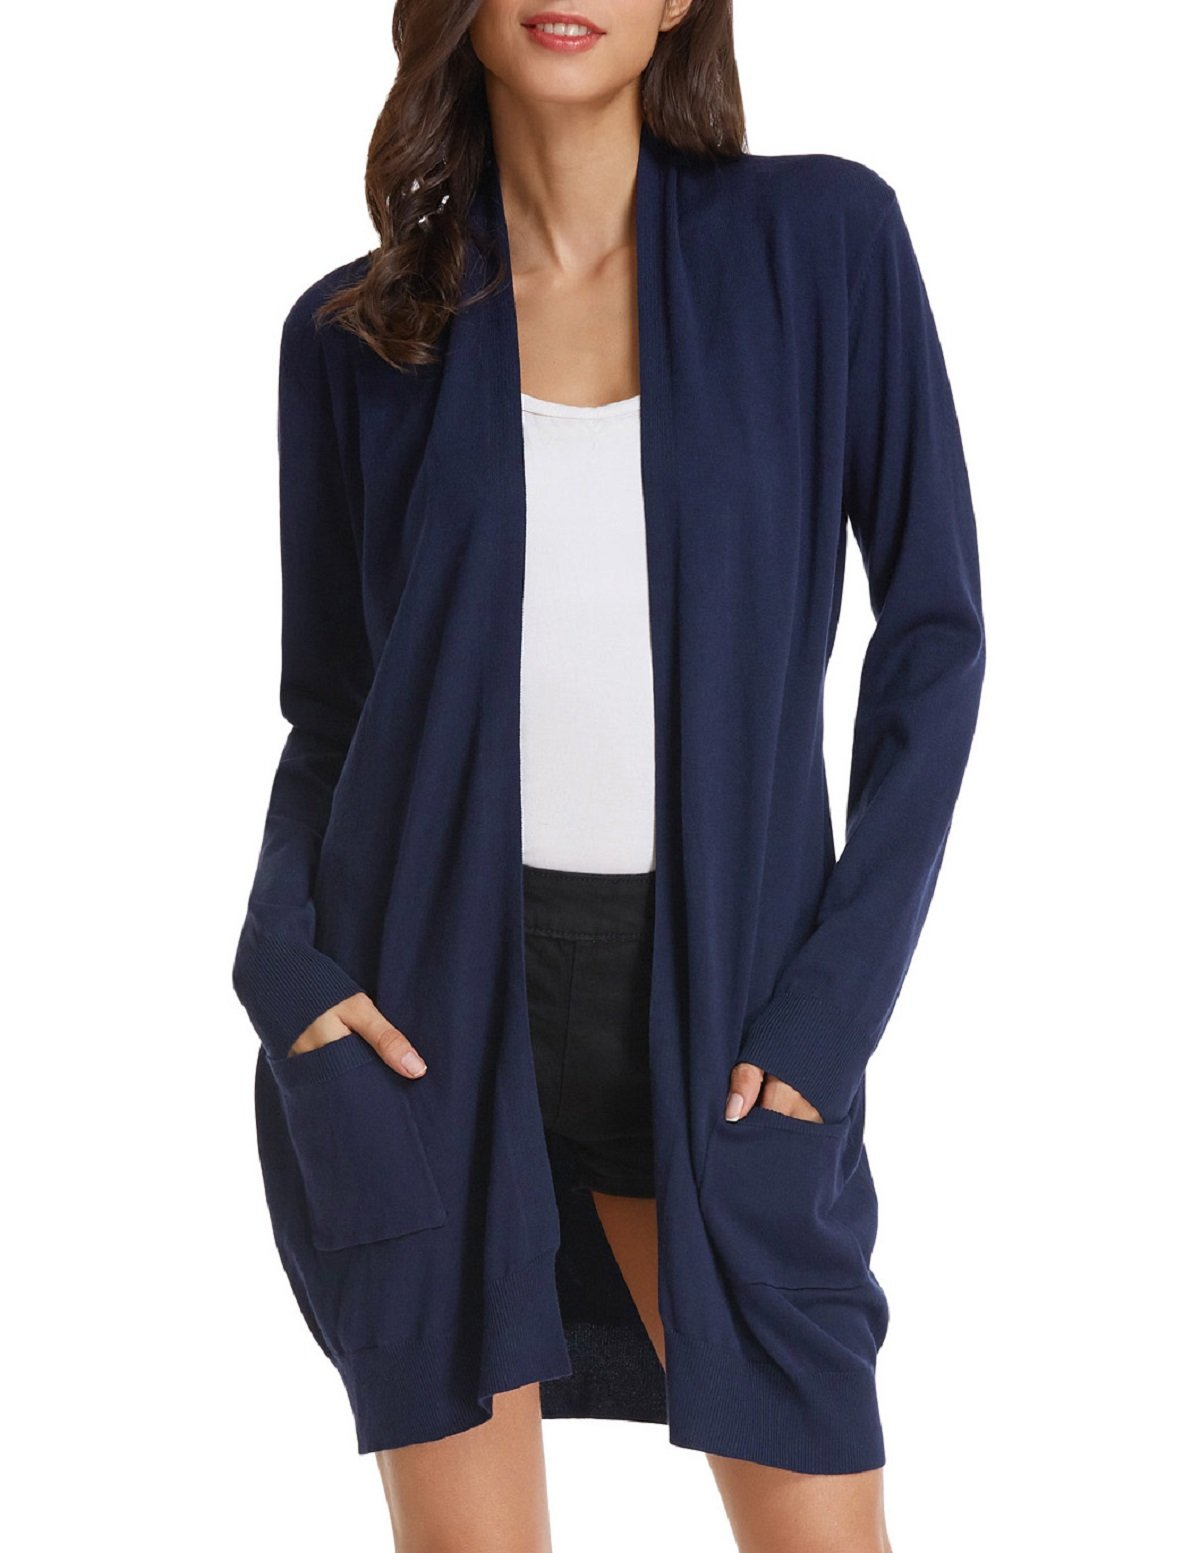 GRACE KARIN Women's Cozy Stretch Kimono Sweater Open Front with Pocket(M,Navy Blue)